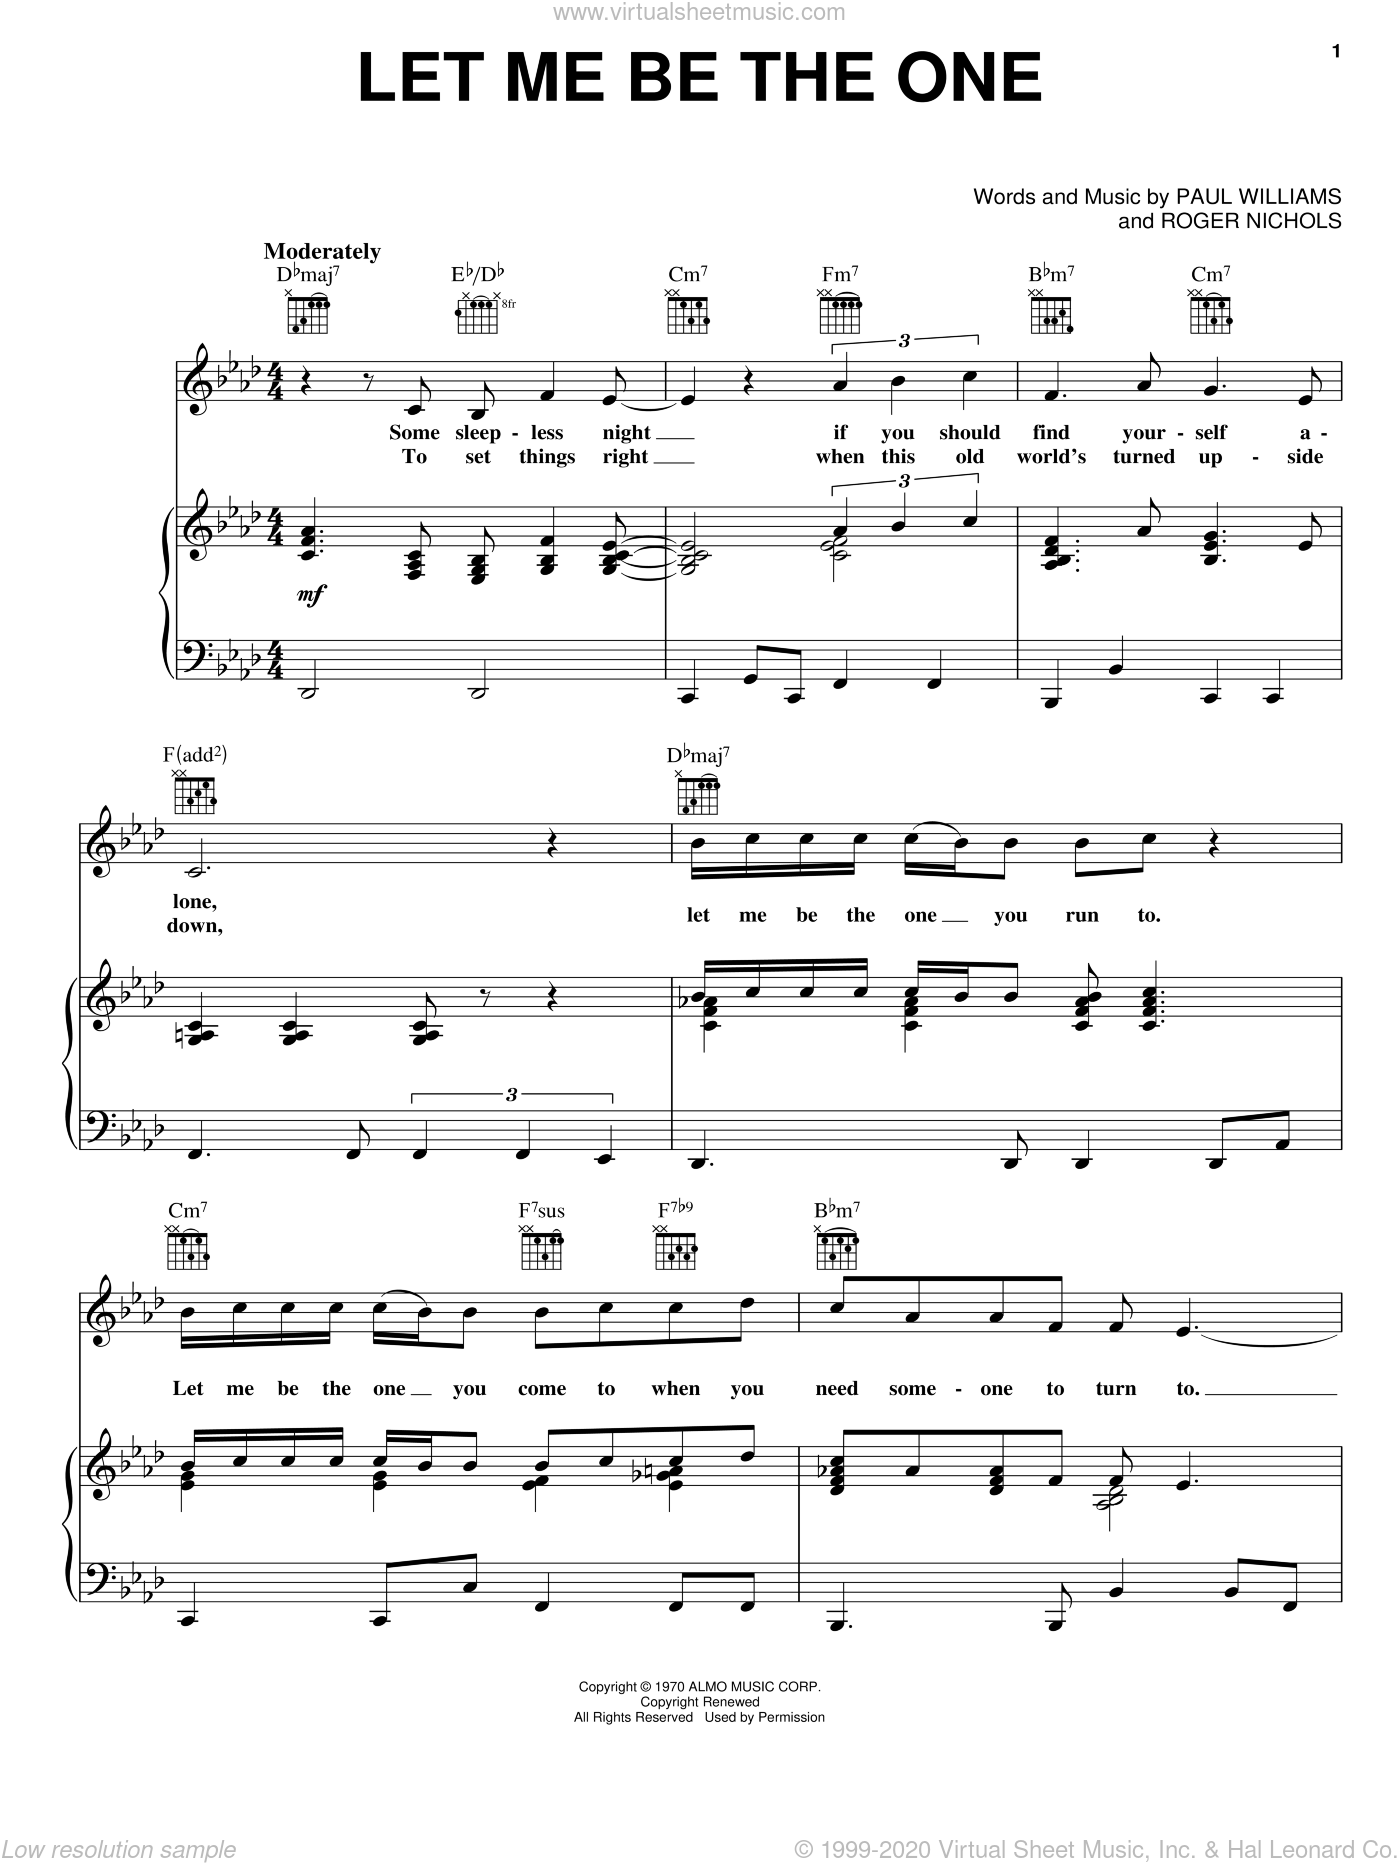 Let Me Be The One sheet music for voice, piano or guitar by Carpenters, Paul Williams and Roger Nichols, intermediate skill level